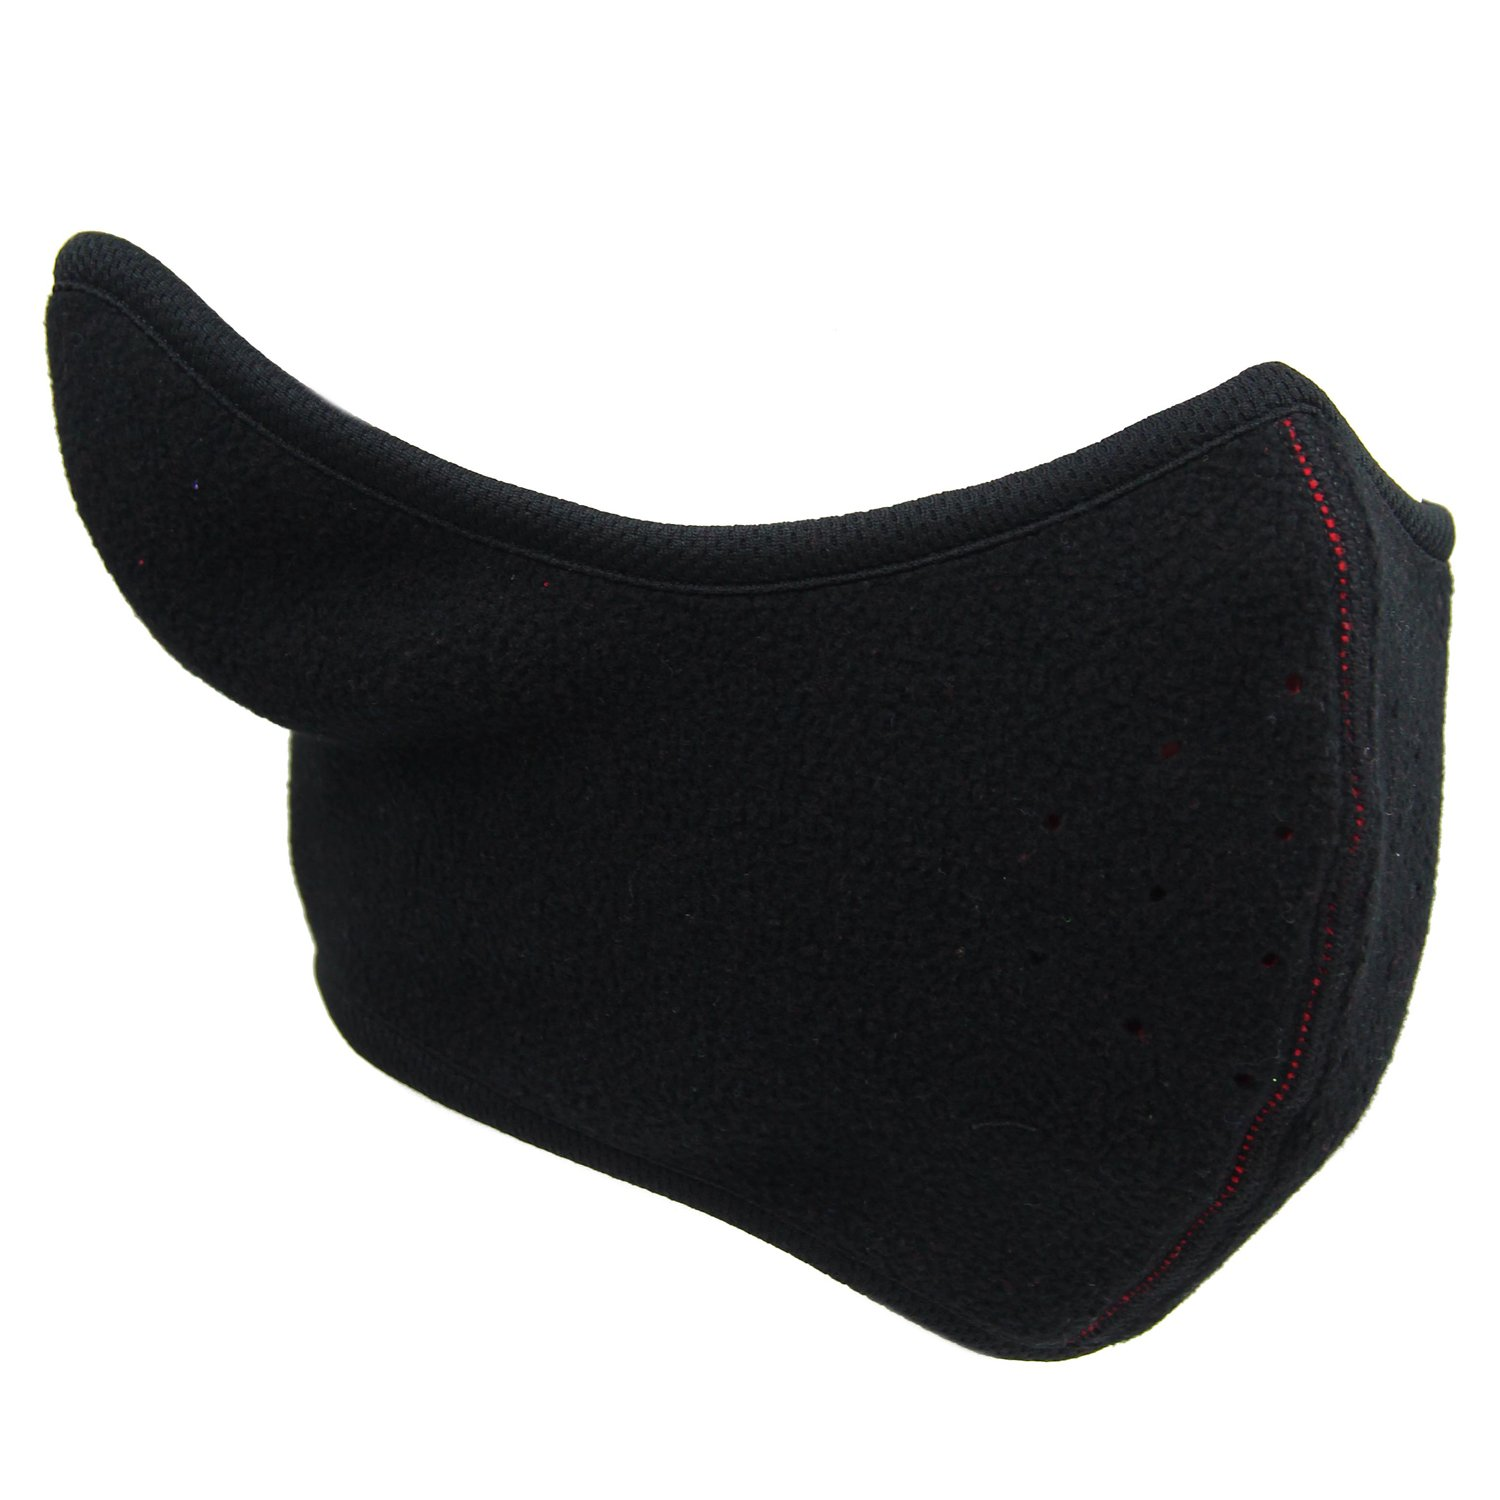 Kids Reversible Fleece Half Ski Face Mask Winter Ear Cover Warmer with Vent Hole Black) CA-QL-MK-KID-A-BLACK-L